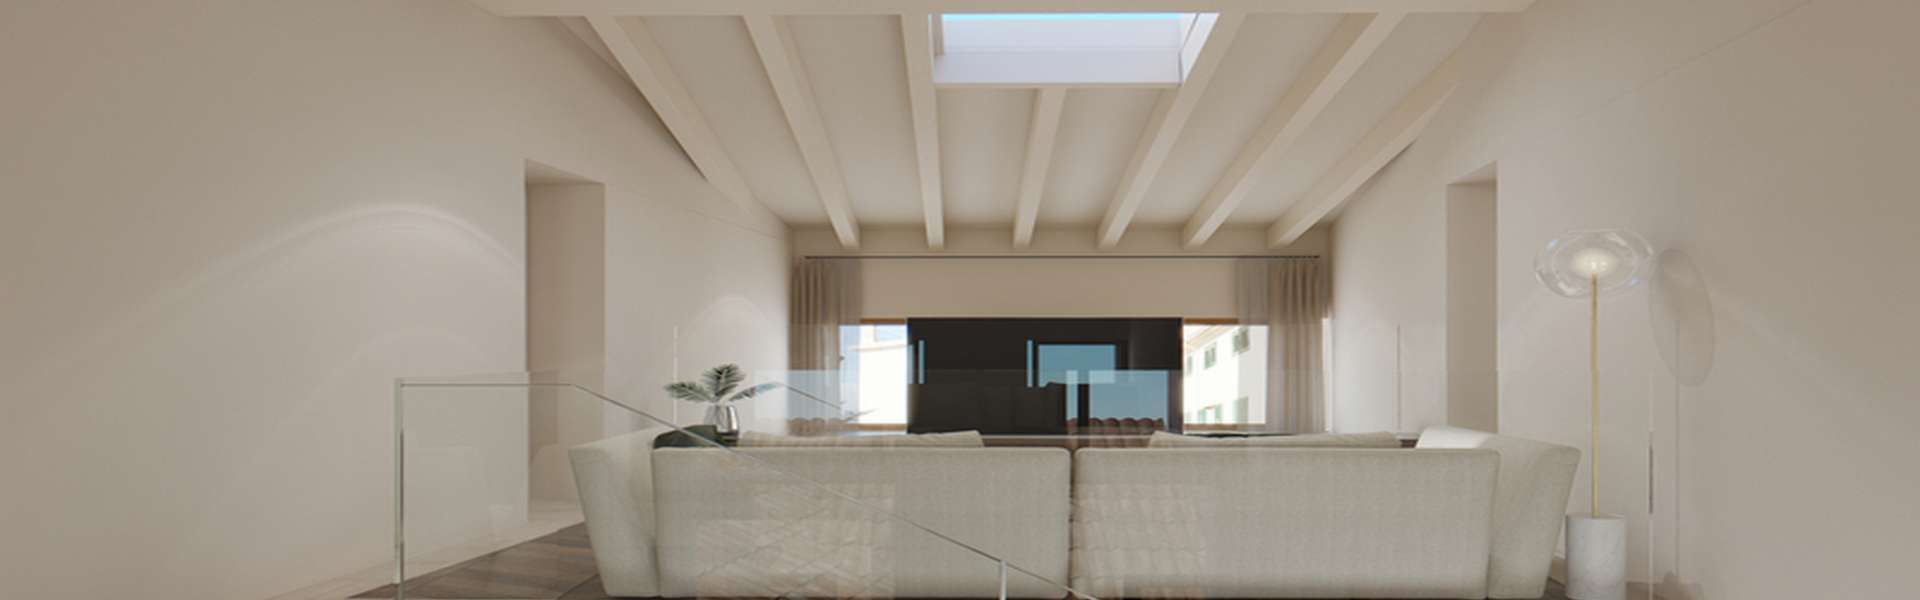 Palma/Centre - Exclusive design apartment near cathedral